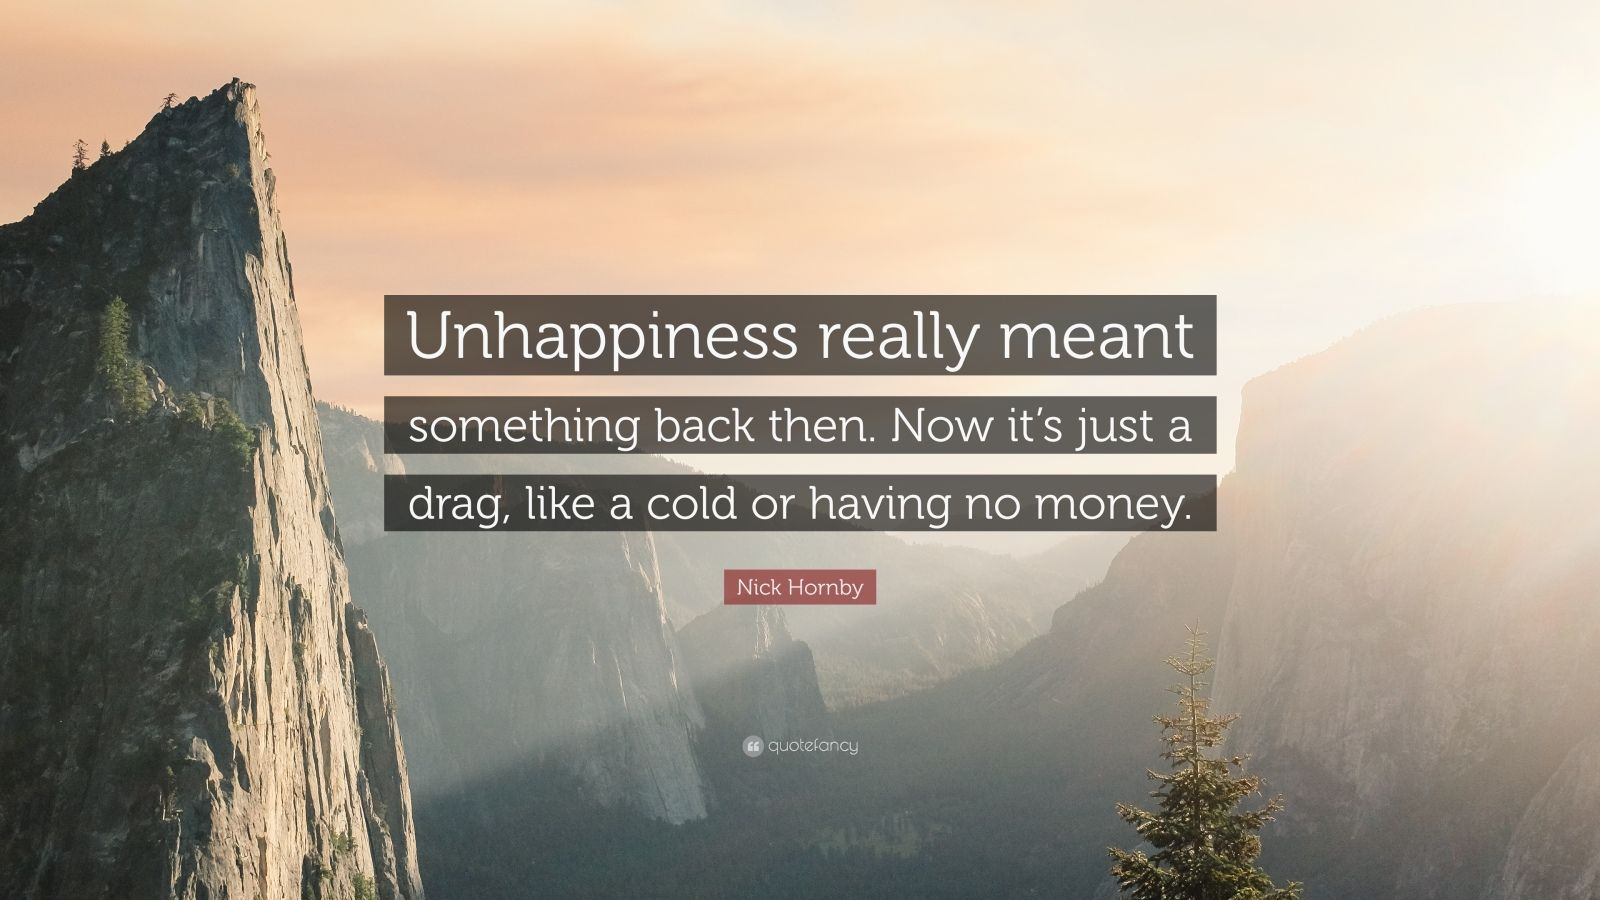 """Nick Hornby Quote: """"Unhappiness really meant something back then. Now it's just a drag, like a cold or having no money."""""""